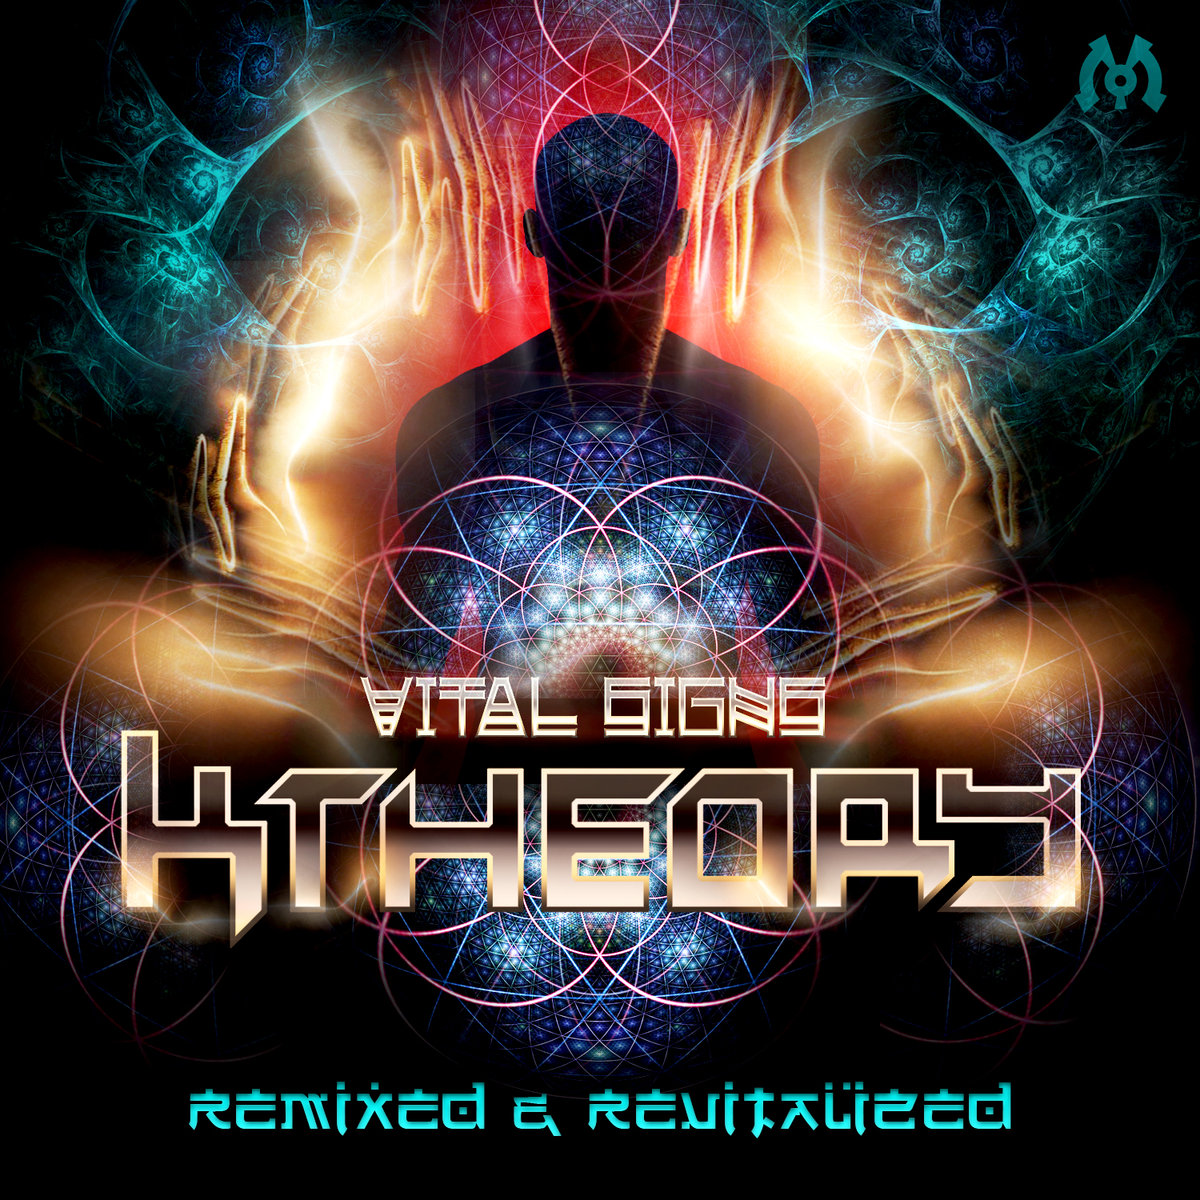 K Theory - Roll Out (Lippe Remix) @ 'Vital Signs: Remixed and Revitalized' album (electronic, dubstep)